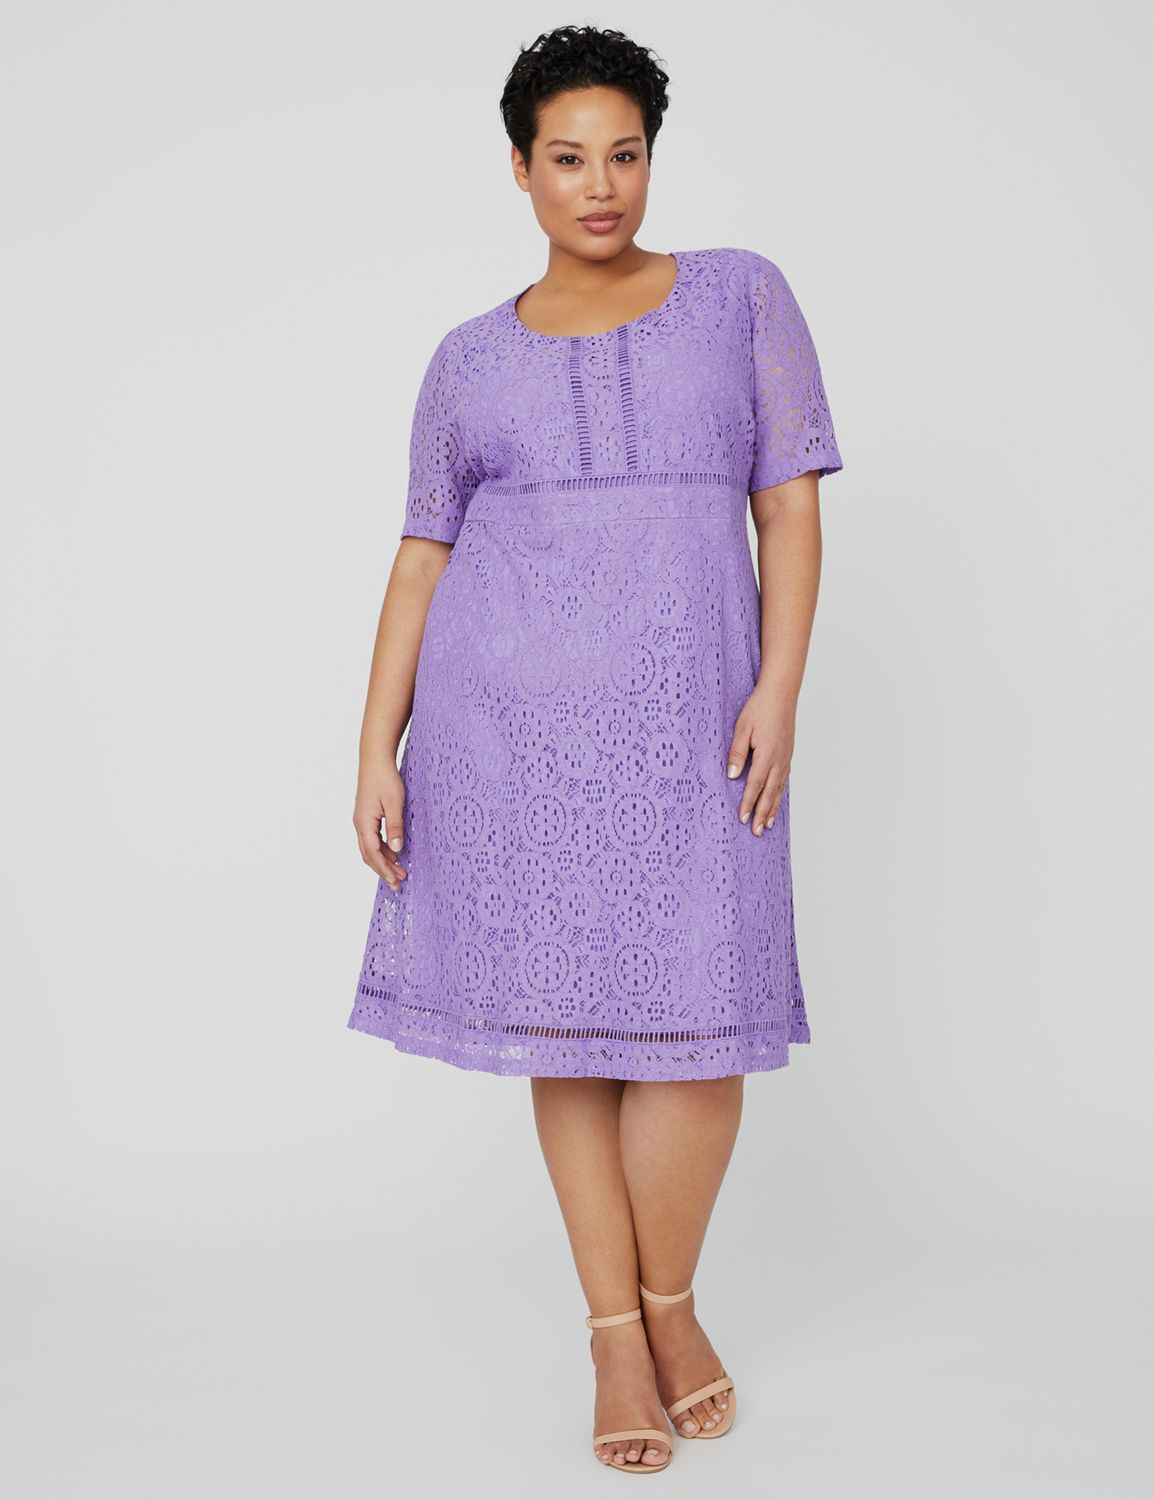 Violet Lace Dress 1091036 A Line Lace Dress with Trim MP-300100571